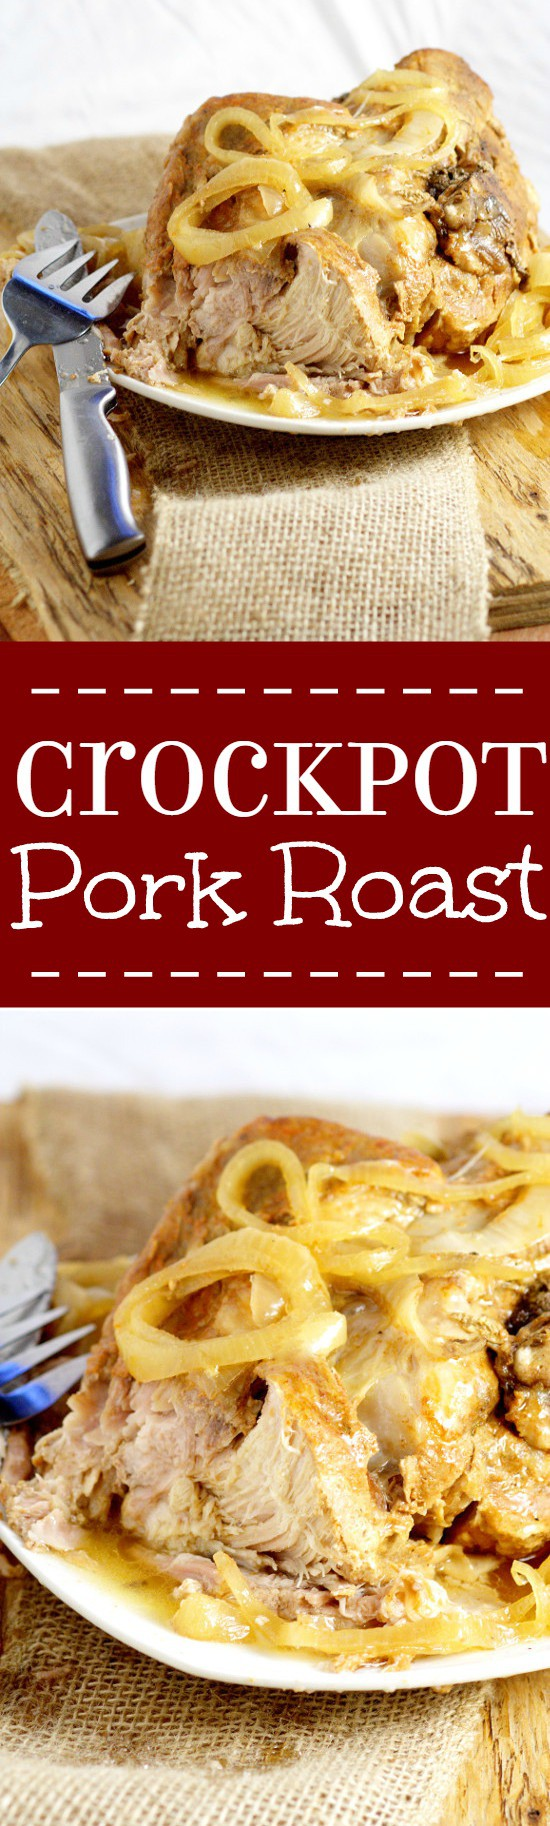 Tender, juicy Crockpot Pork Roastrecipe with added zing from soy sauce and red wine vinegar is a perfect low maintenance easy dinner idea for family and company. Pair it with your classic mashed potatoes and veggies for a cozy meal.